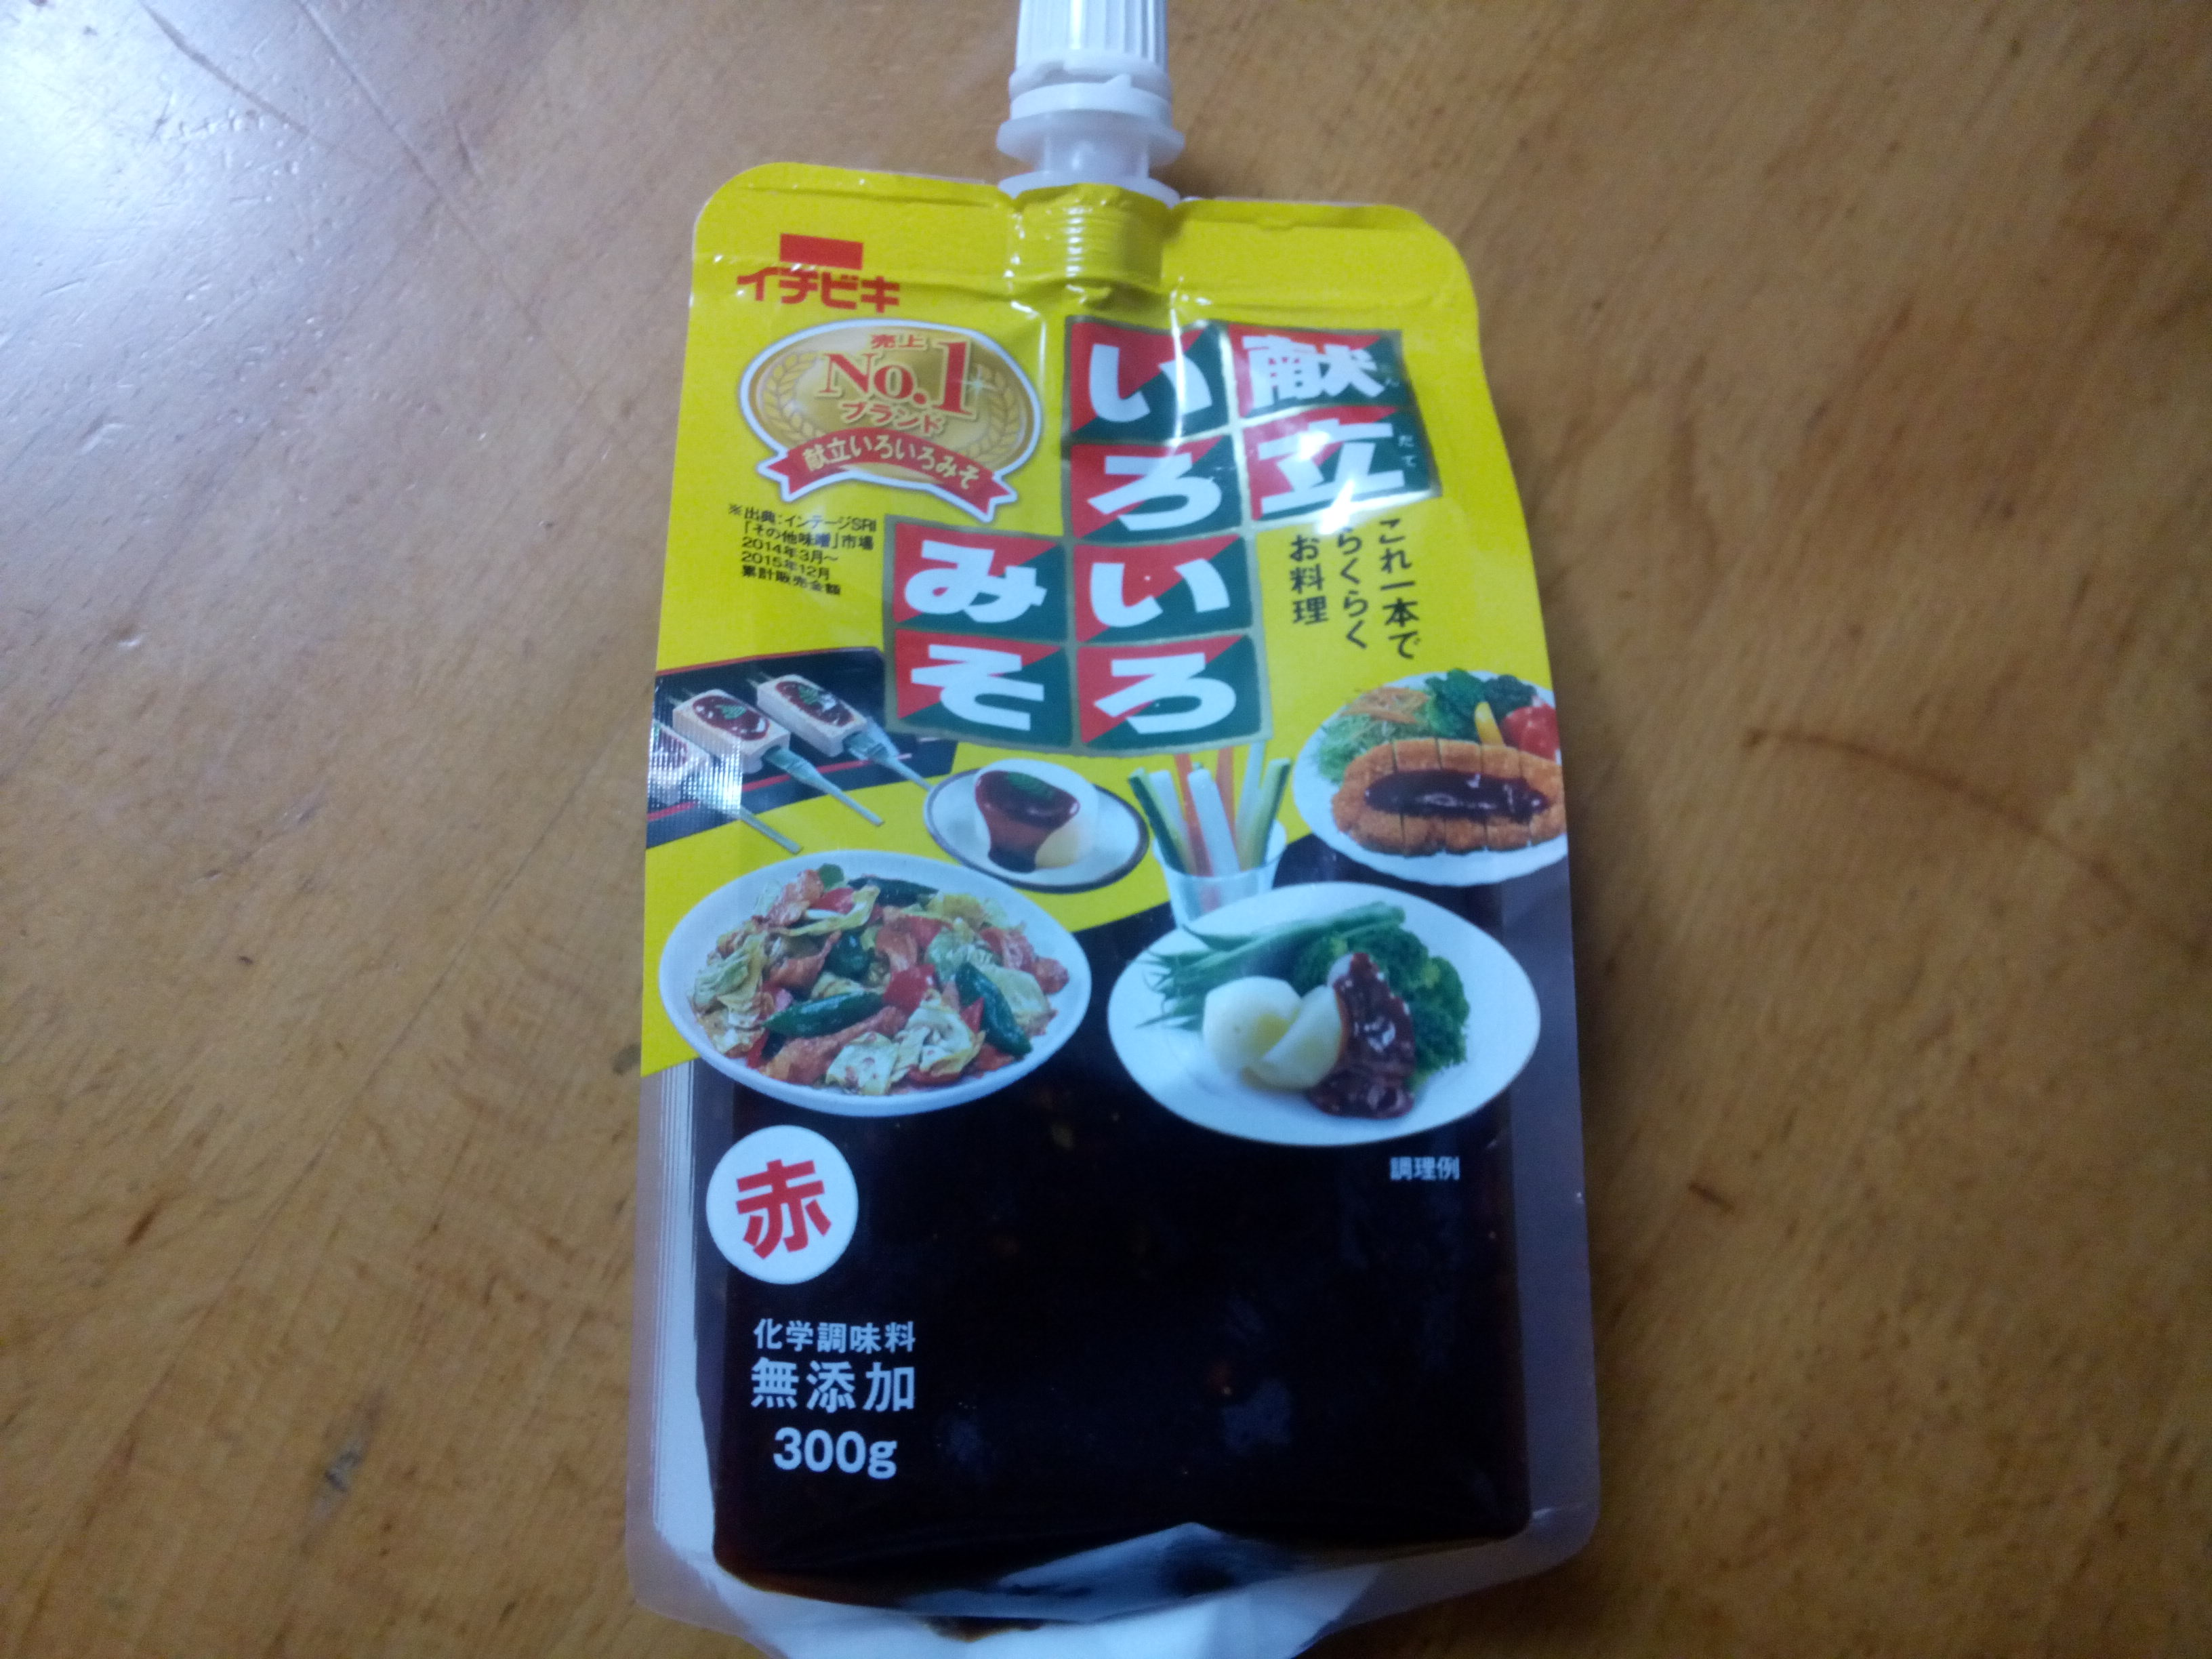 'Konnyaku sauce' is all I got from J. It's a little sweet, a little salty, and you just smear it on konnyaku and consume.